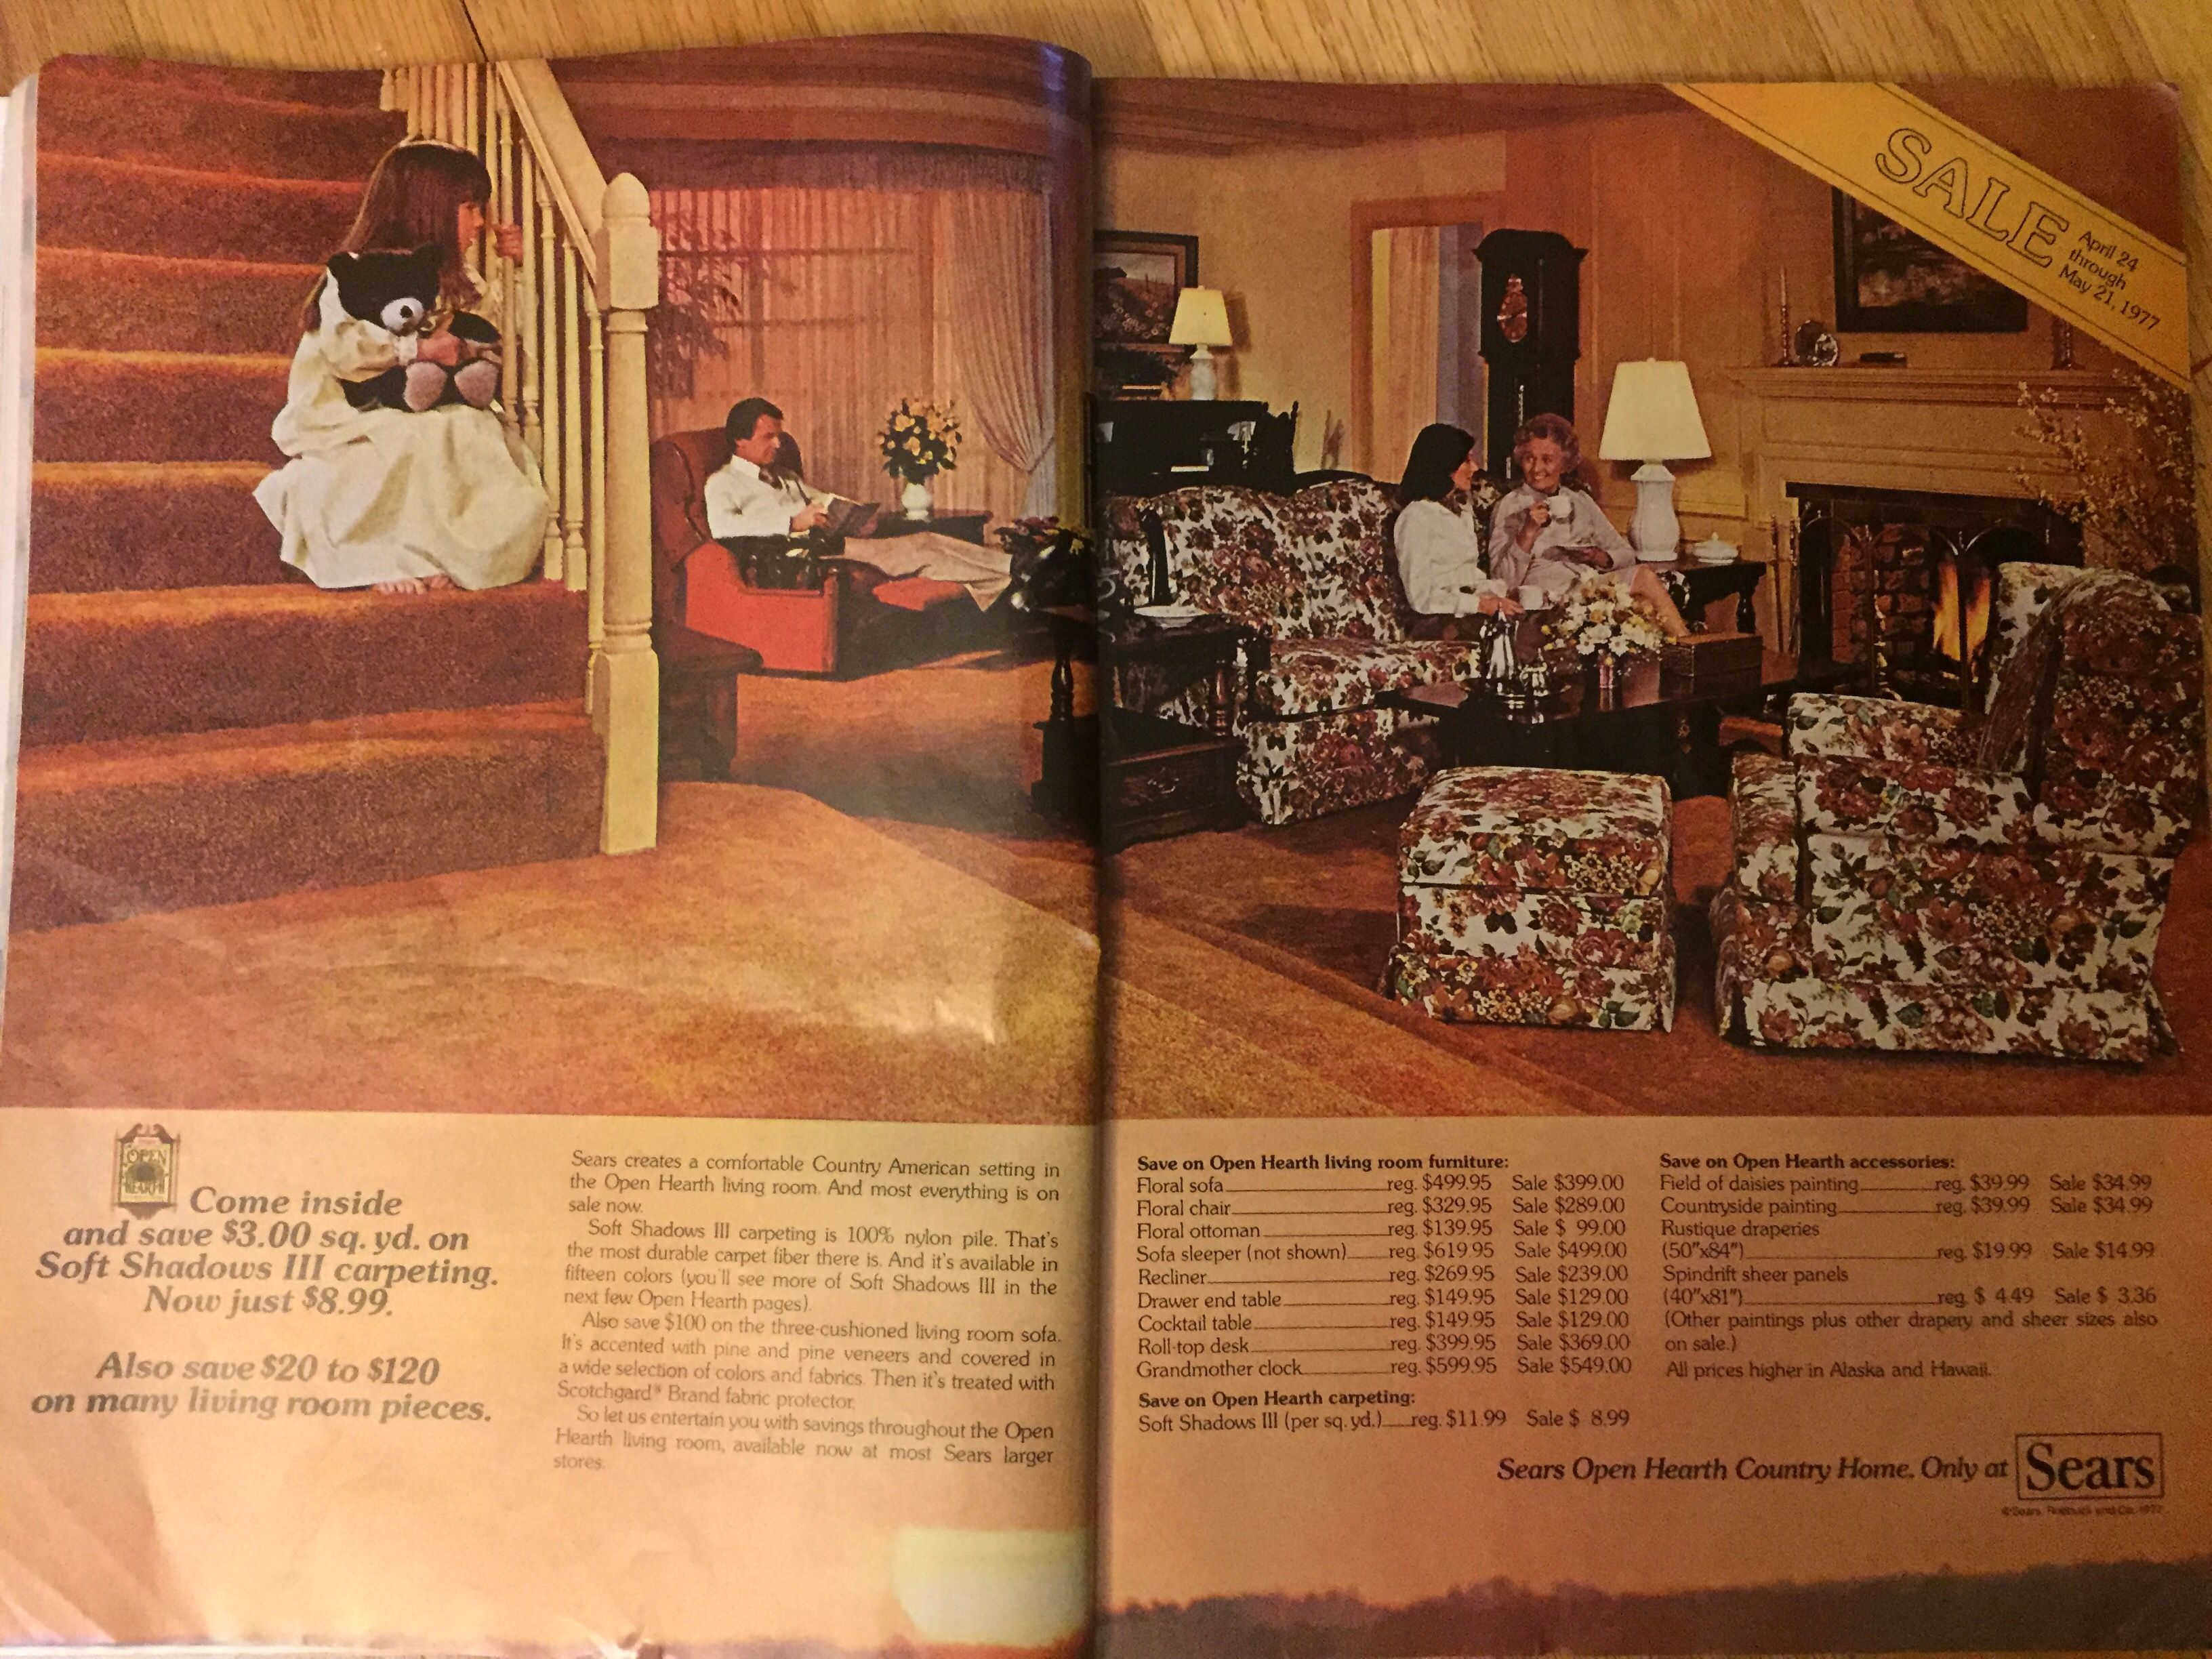 Sears Open Hearth Living Room Ad From 1977 Good Housekeeping Living Room Sets Furniture Cozy Living Room Furniture Family Room Design #sears #living #room #sets